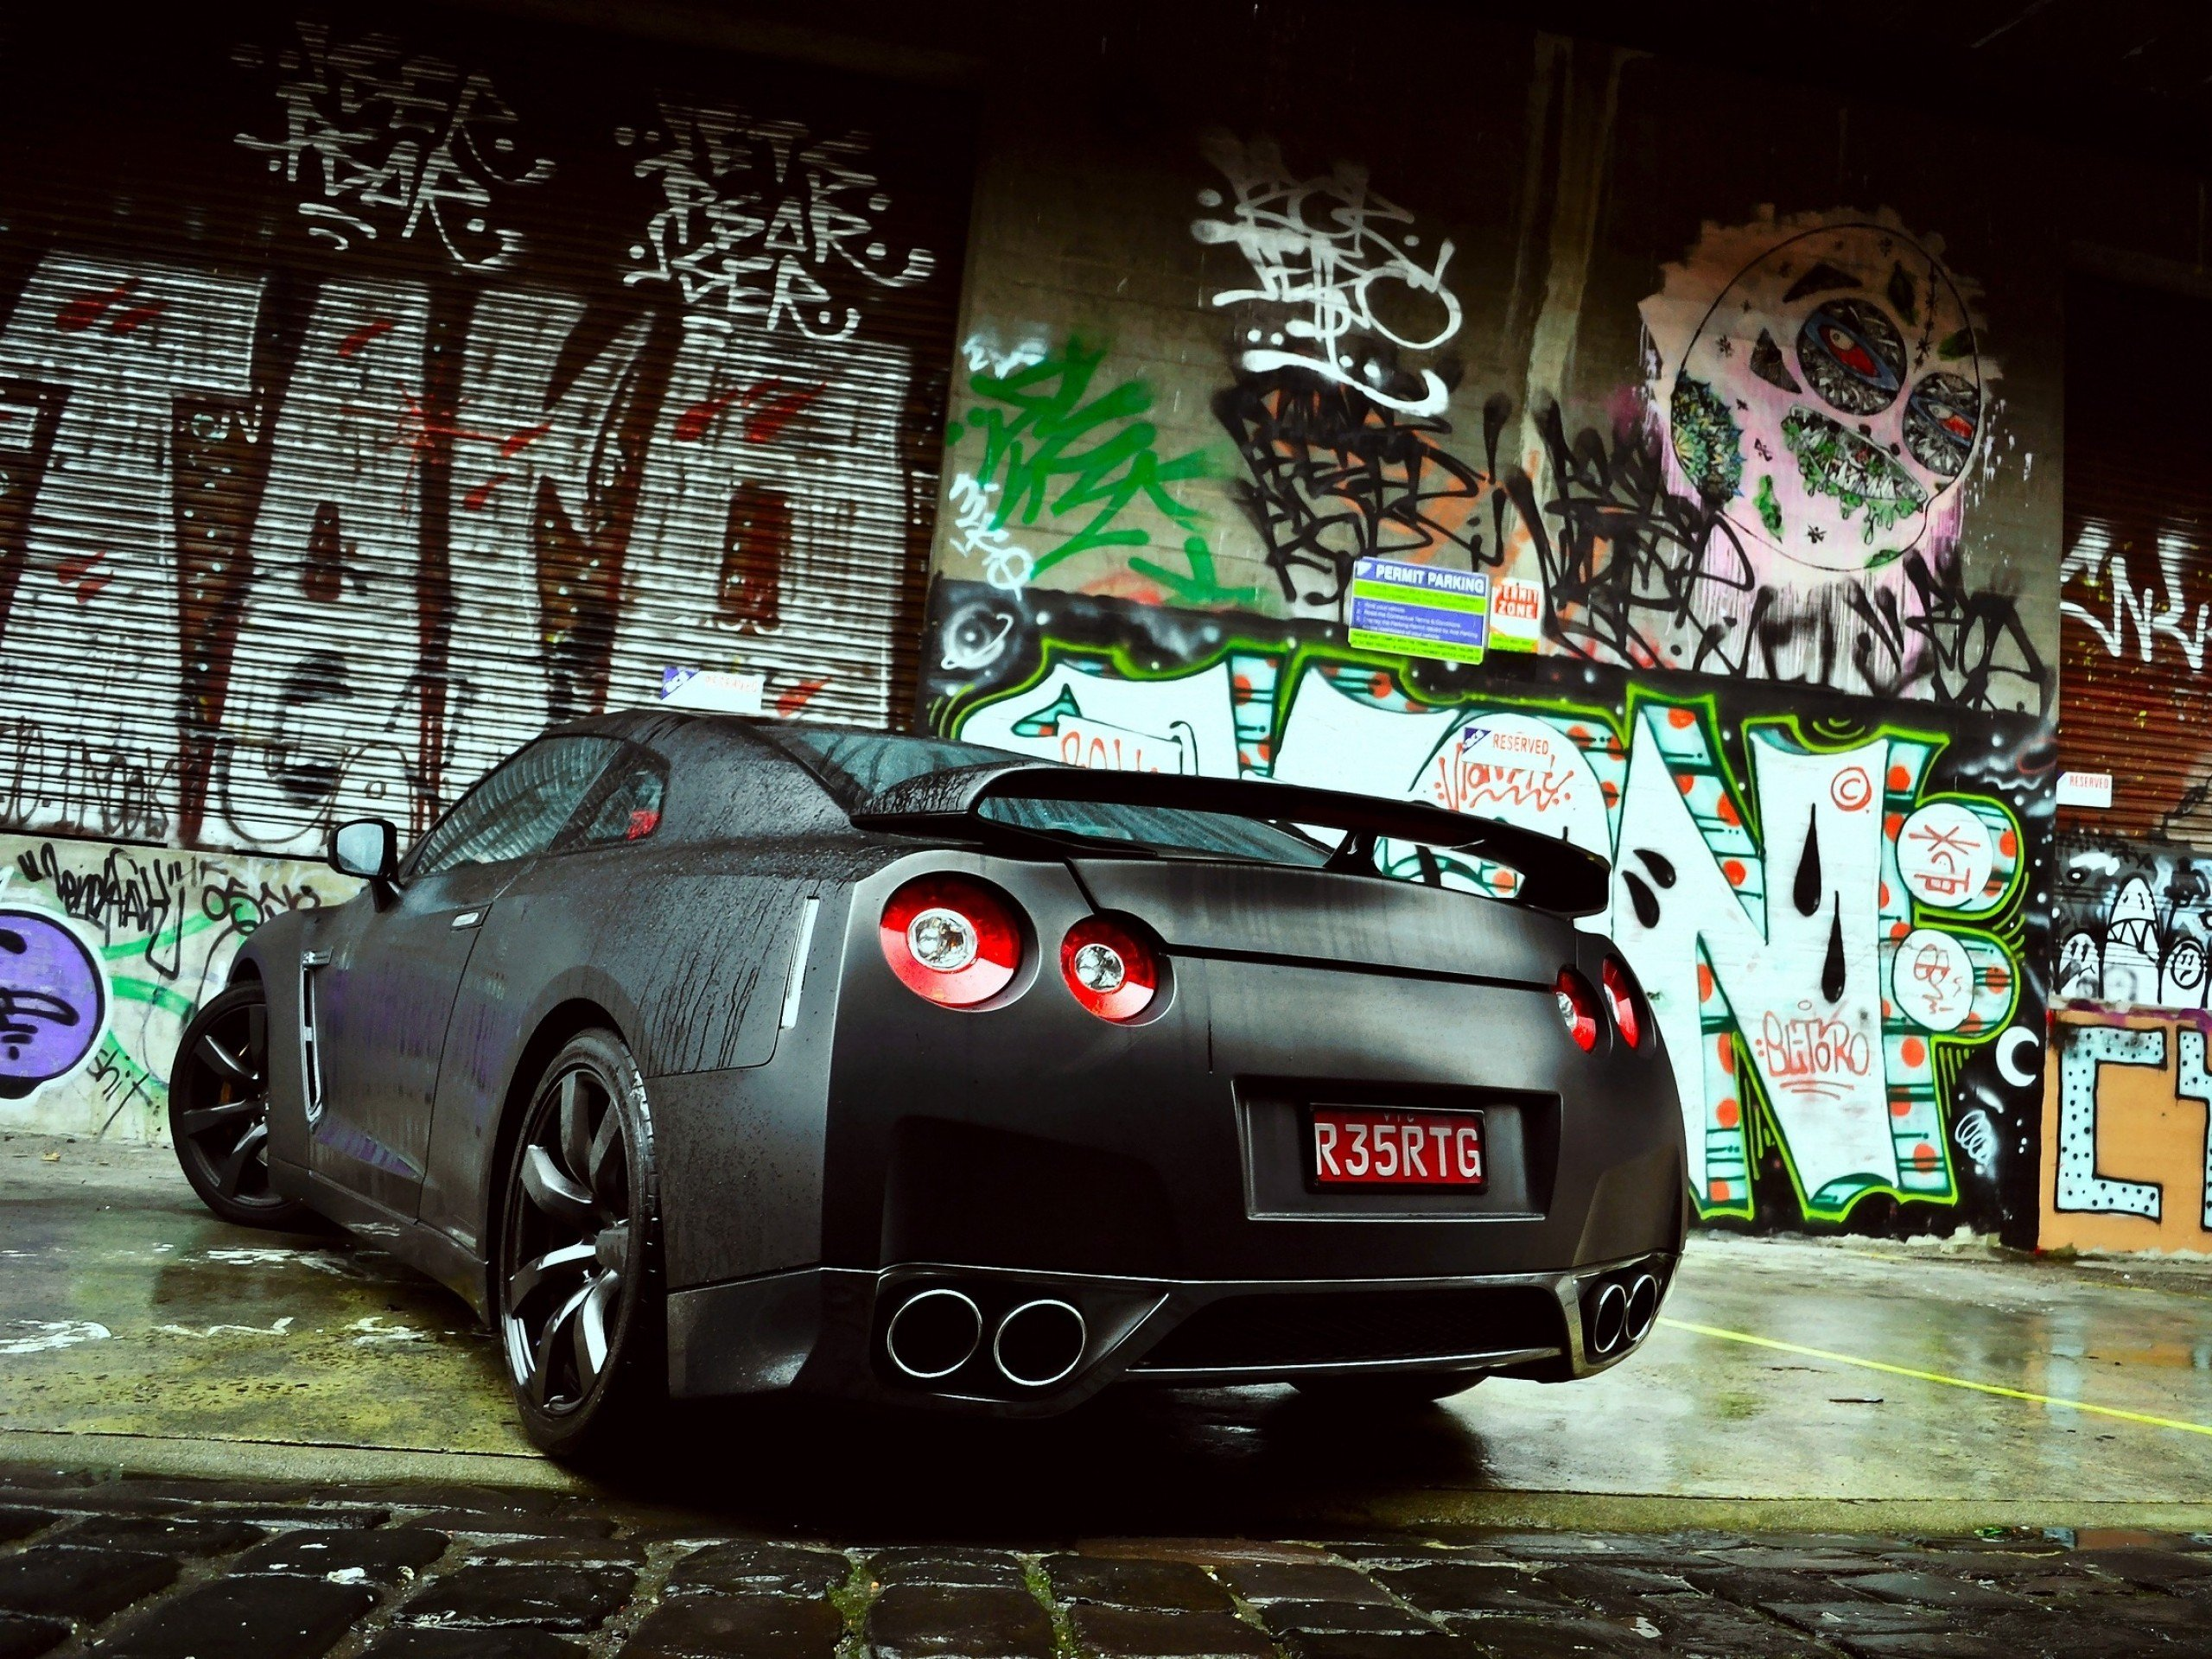 Matte Black Nissan Gtr Wallpaper >> Wall cars graffiti Nissan matte Nissan GTR wallpaper | 2560x1920 | 286214 | WallpaperUP